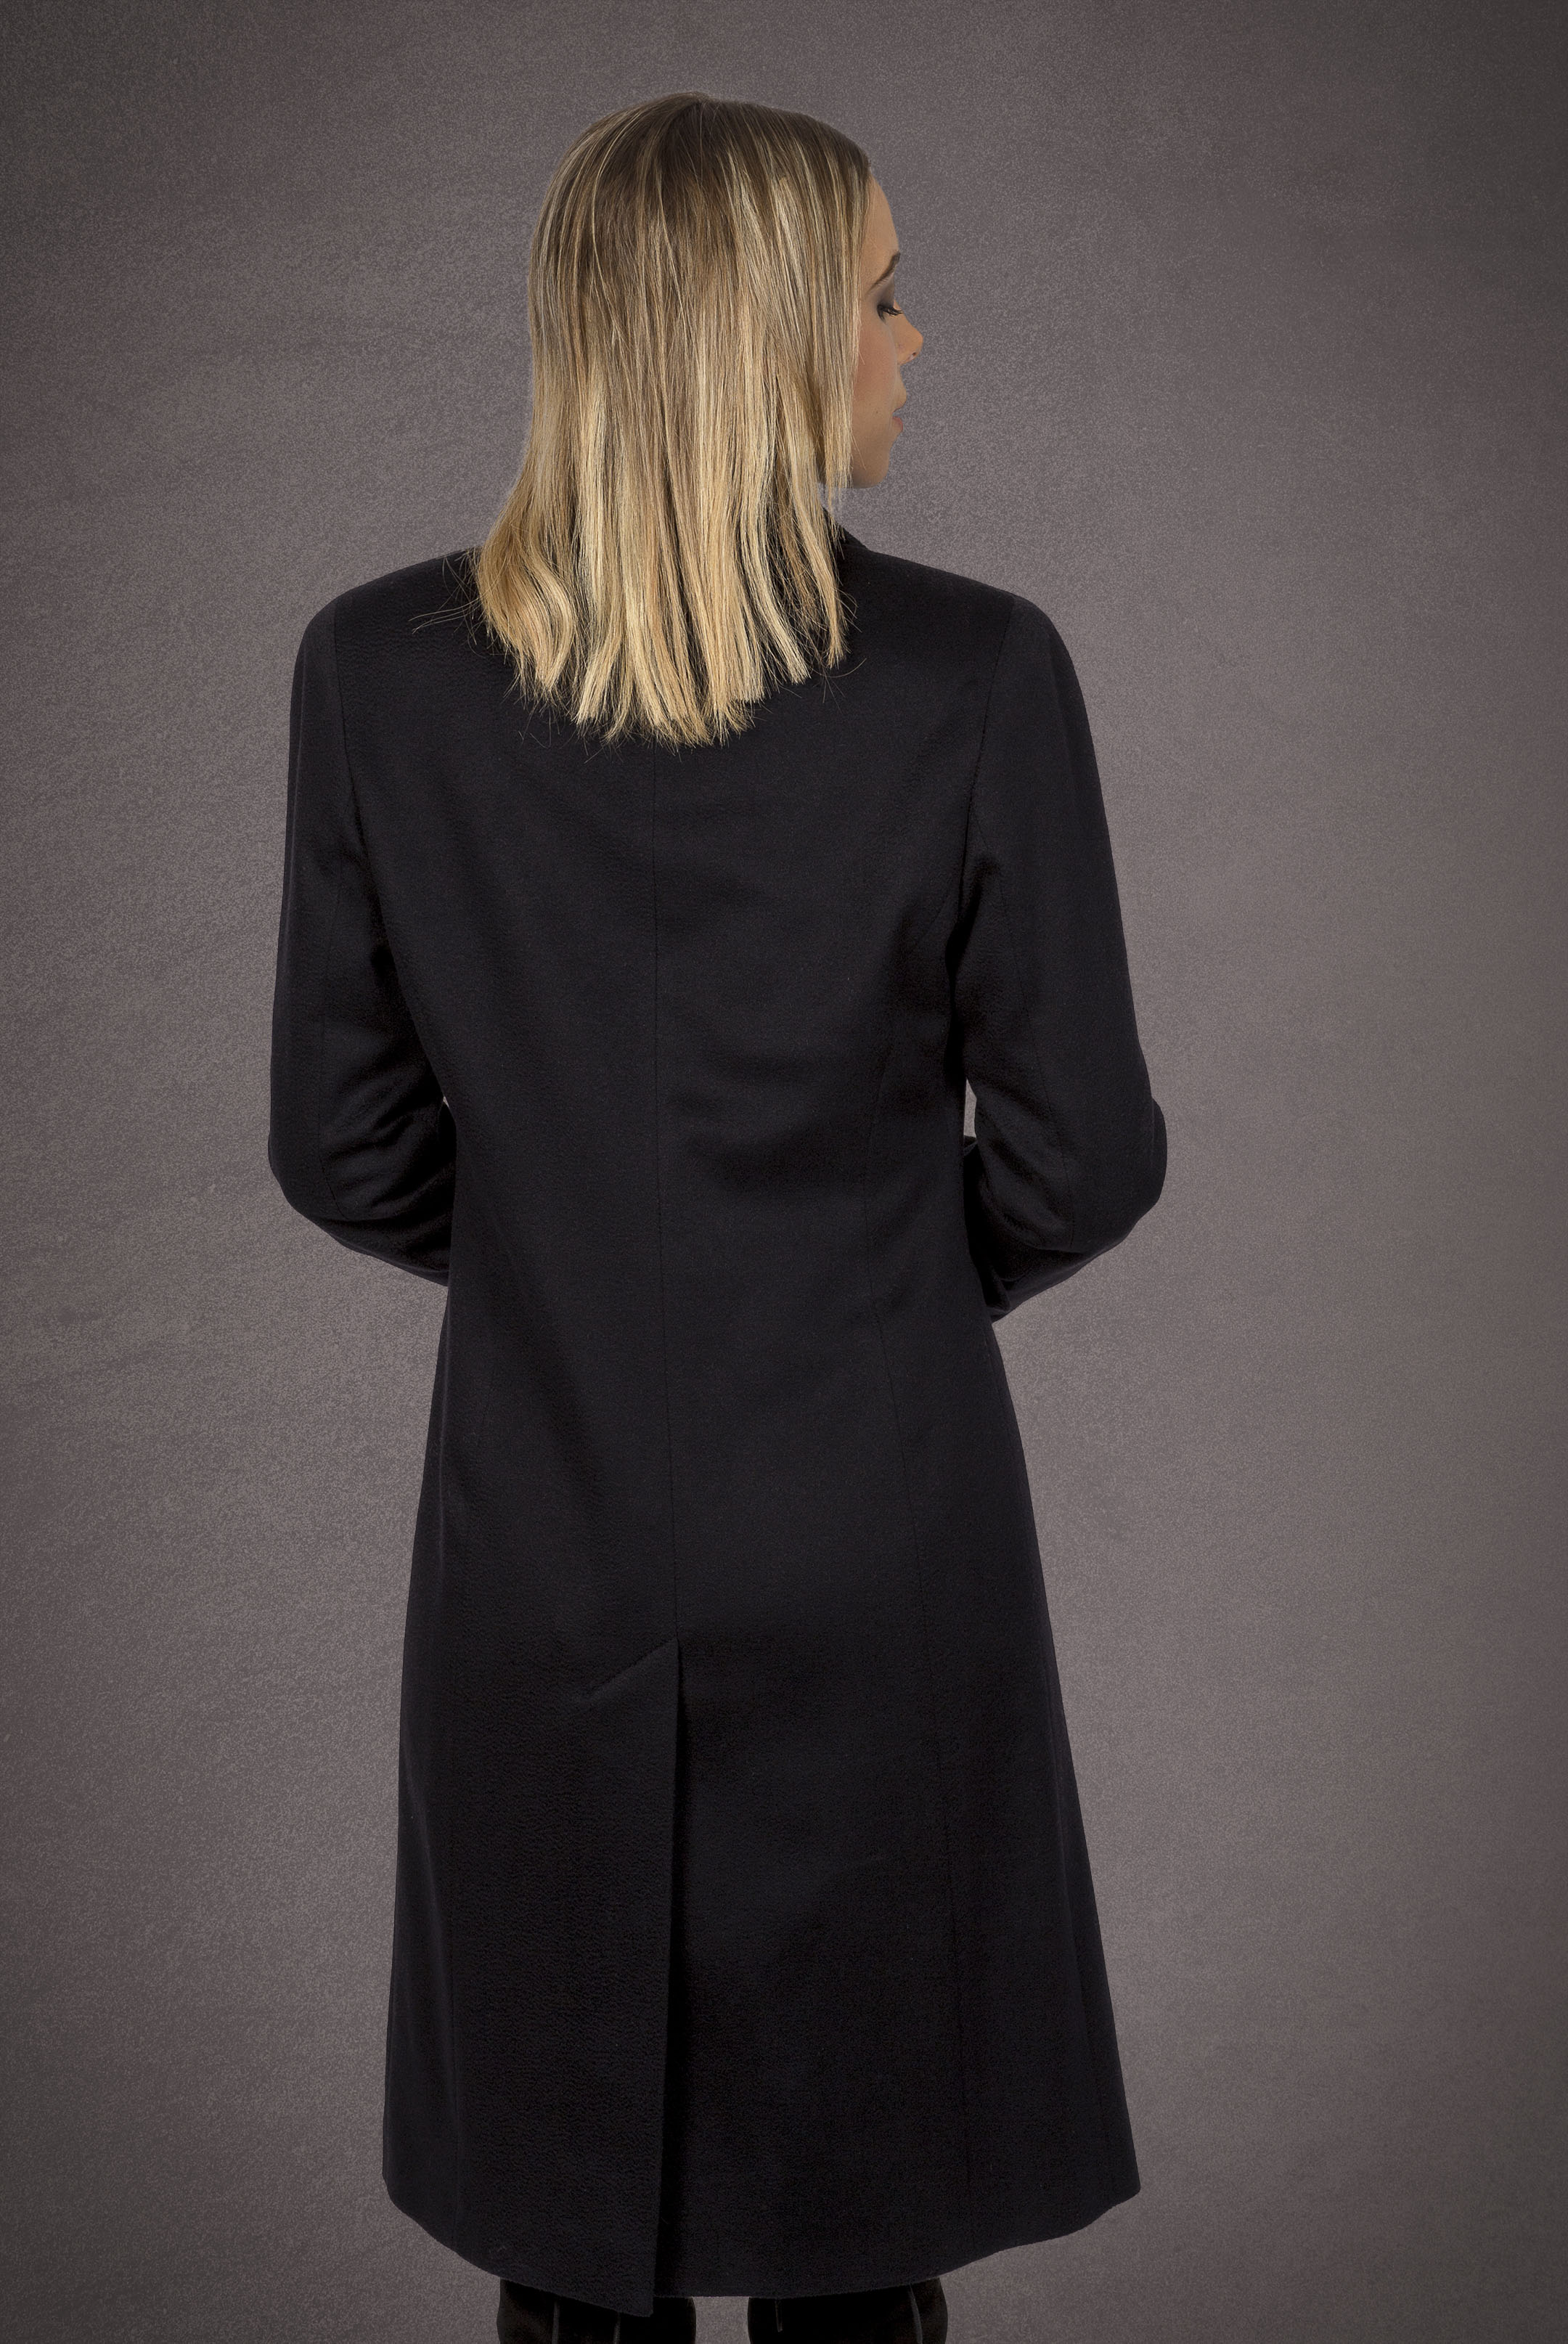 Meldes De Luxe – Fitted 100% cashmere coat with wide tailored collar – Dark blue - Ref: 455-2-02